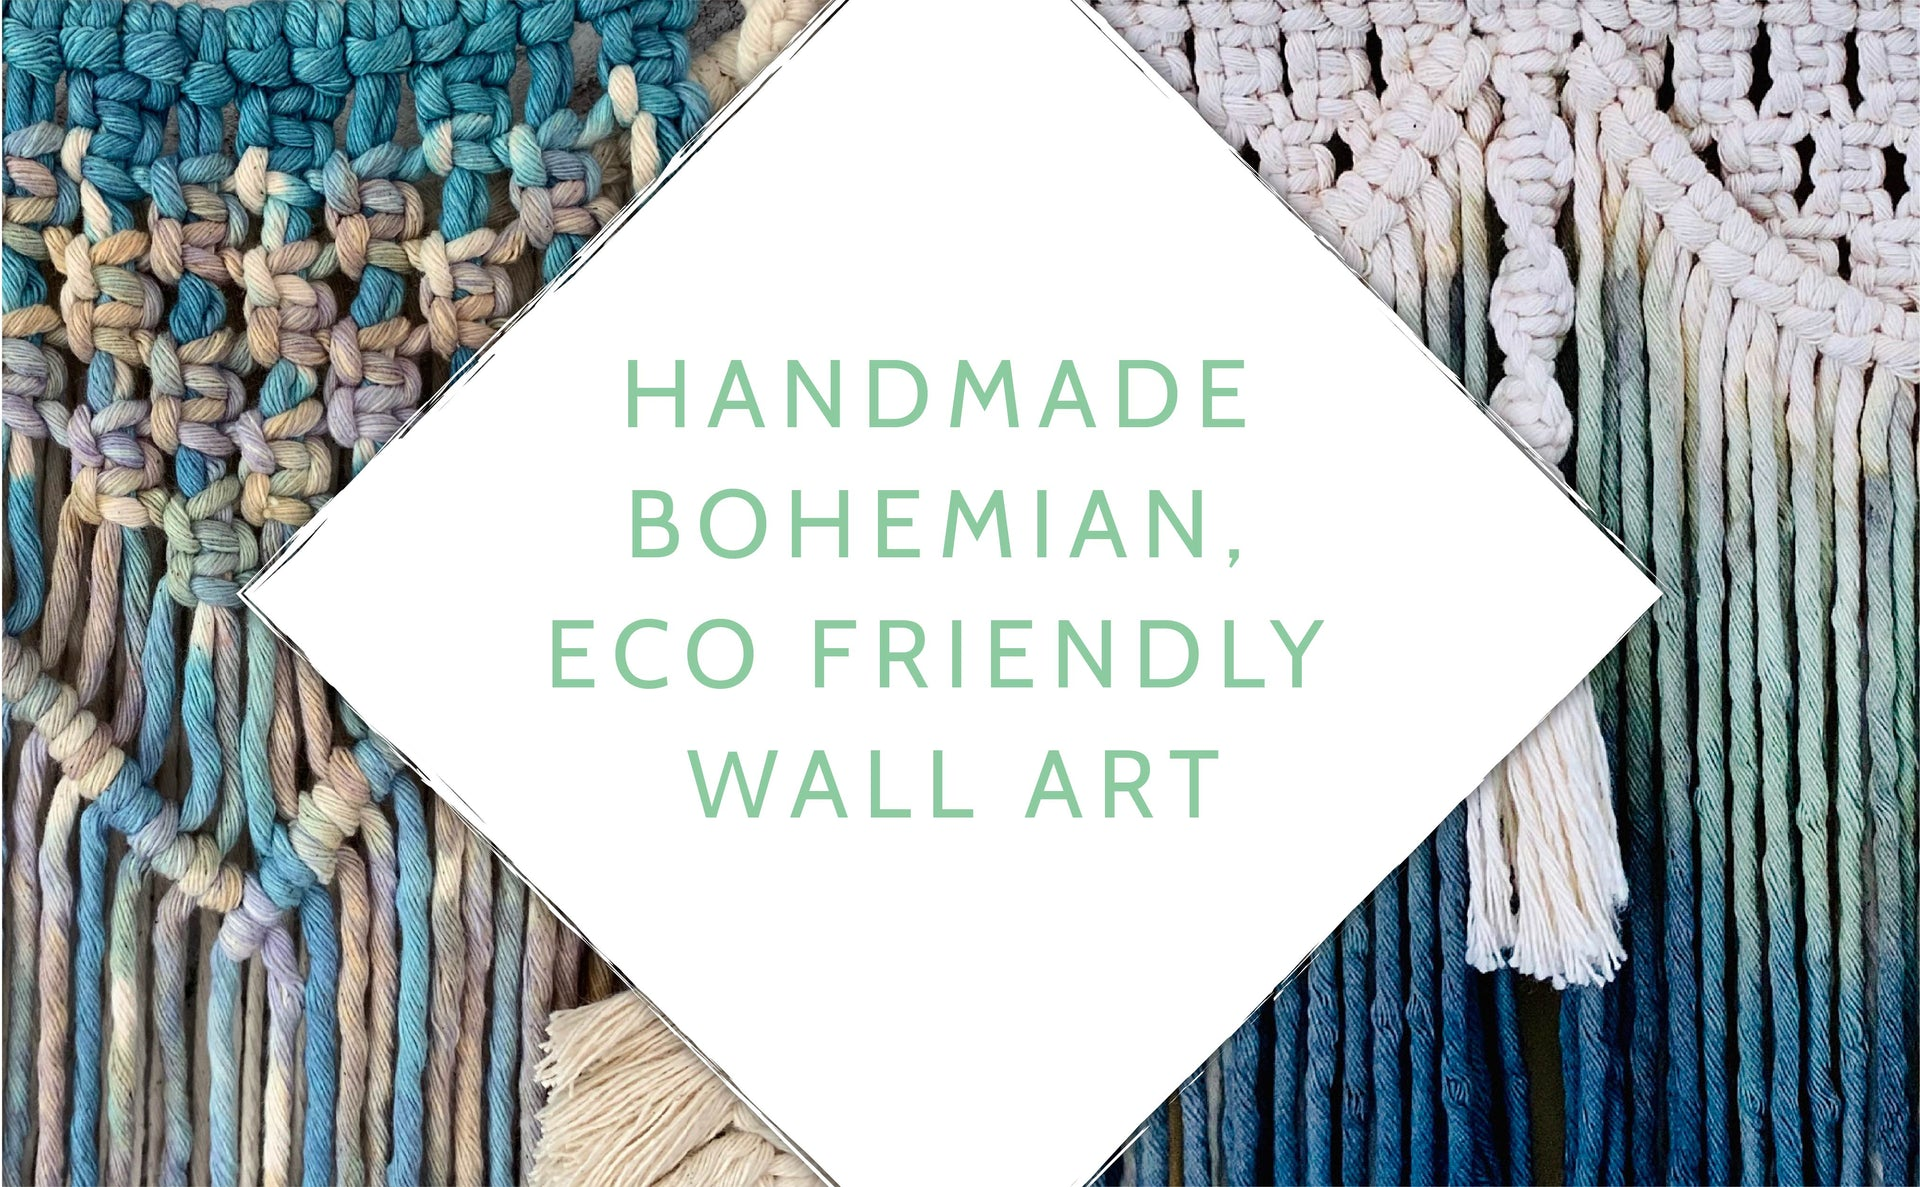 handmade, bohemian, eco friendly wall art